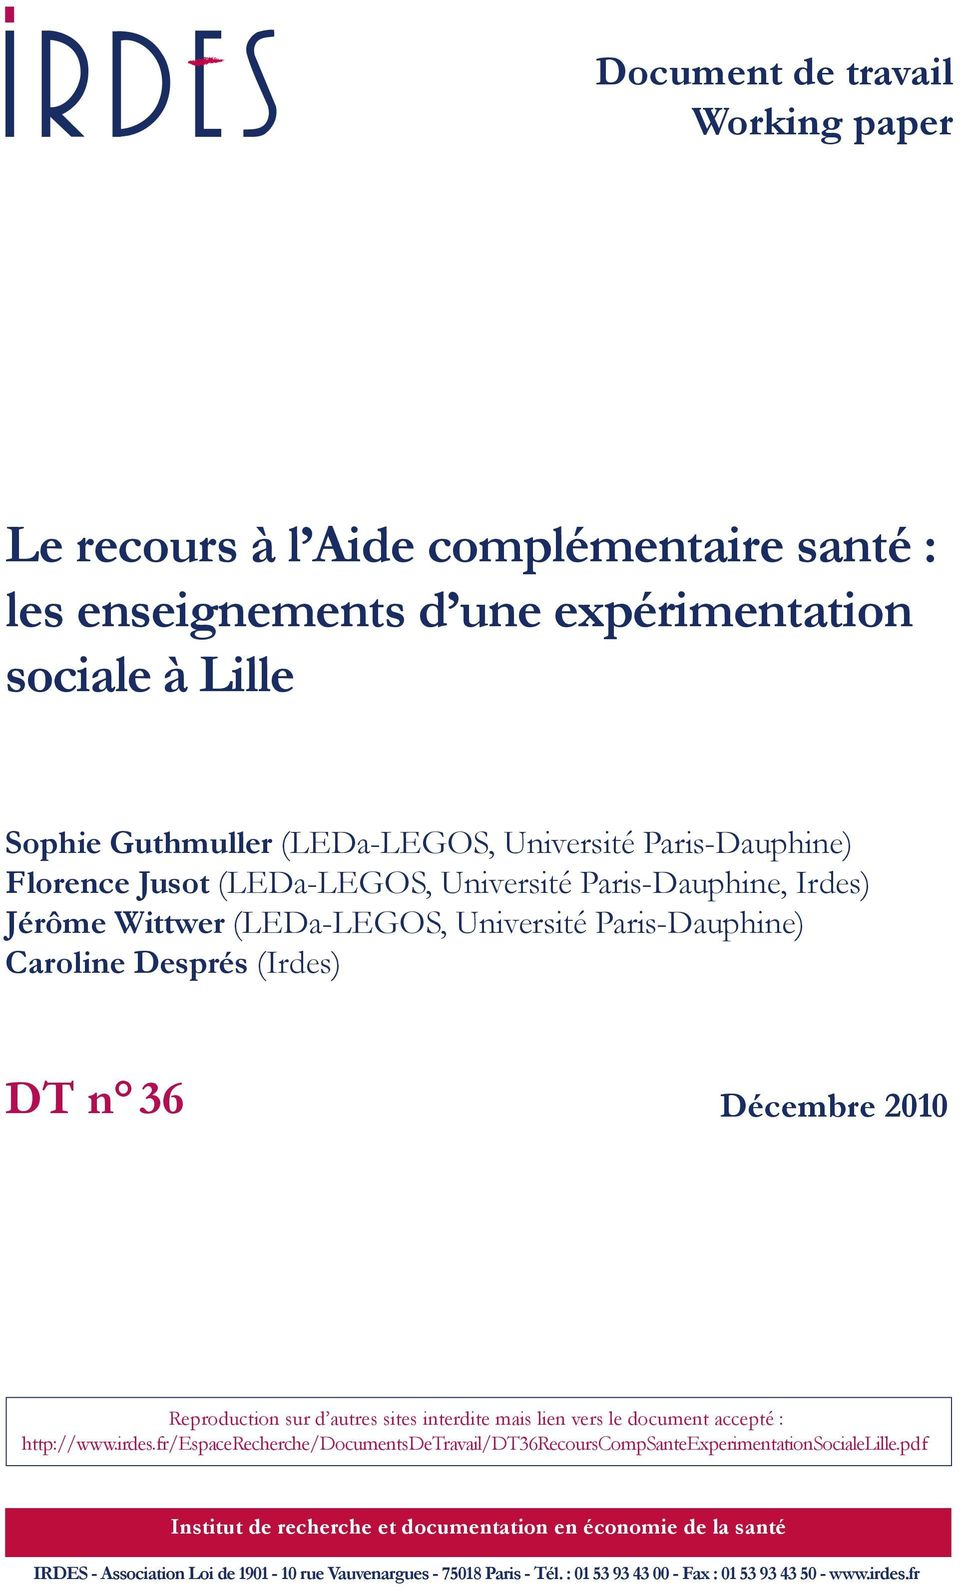 Reproduction sur d autres sites interdite mais ien vers e document accepté : http://www.irdes.fr/espacerecherche/documentsdetravai/dt36recourscompsanteexperimentationsociaelie.